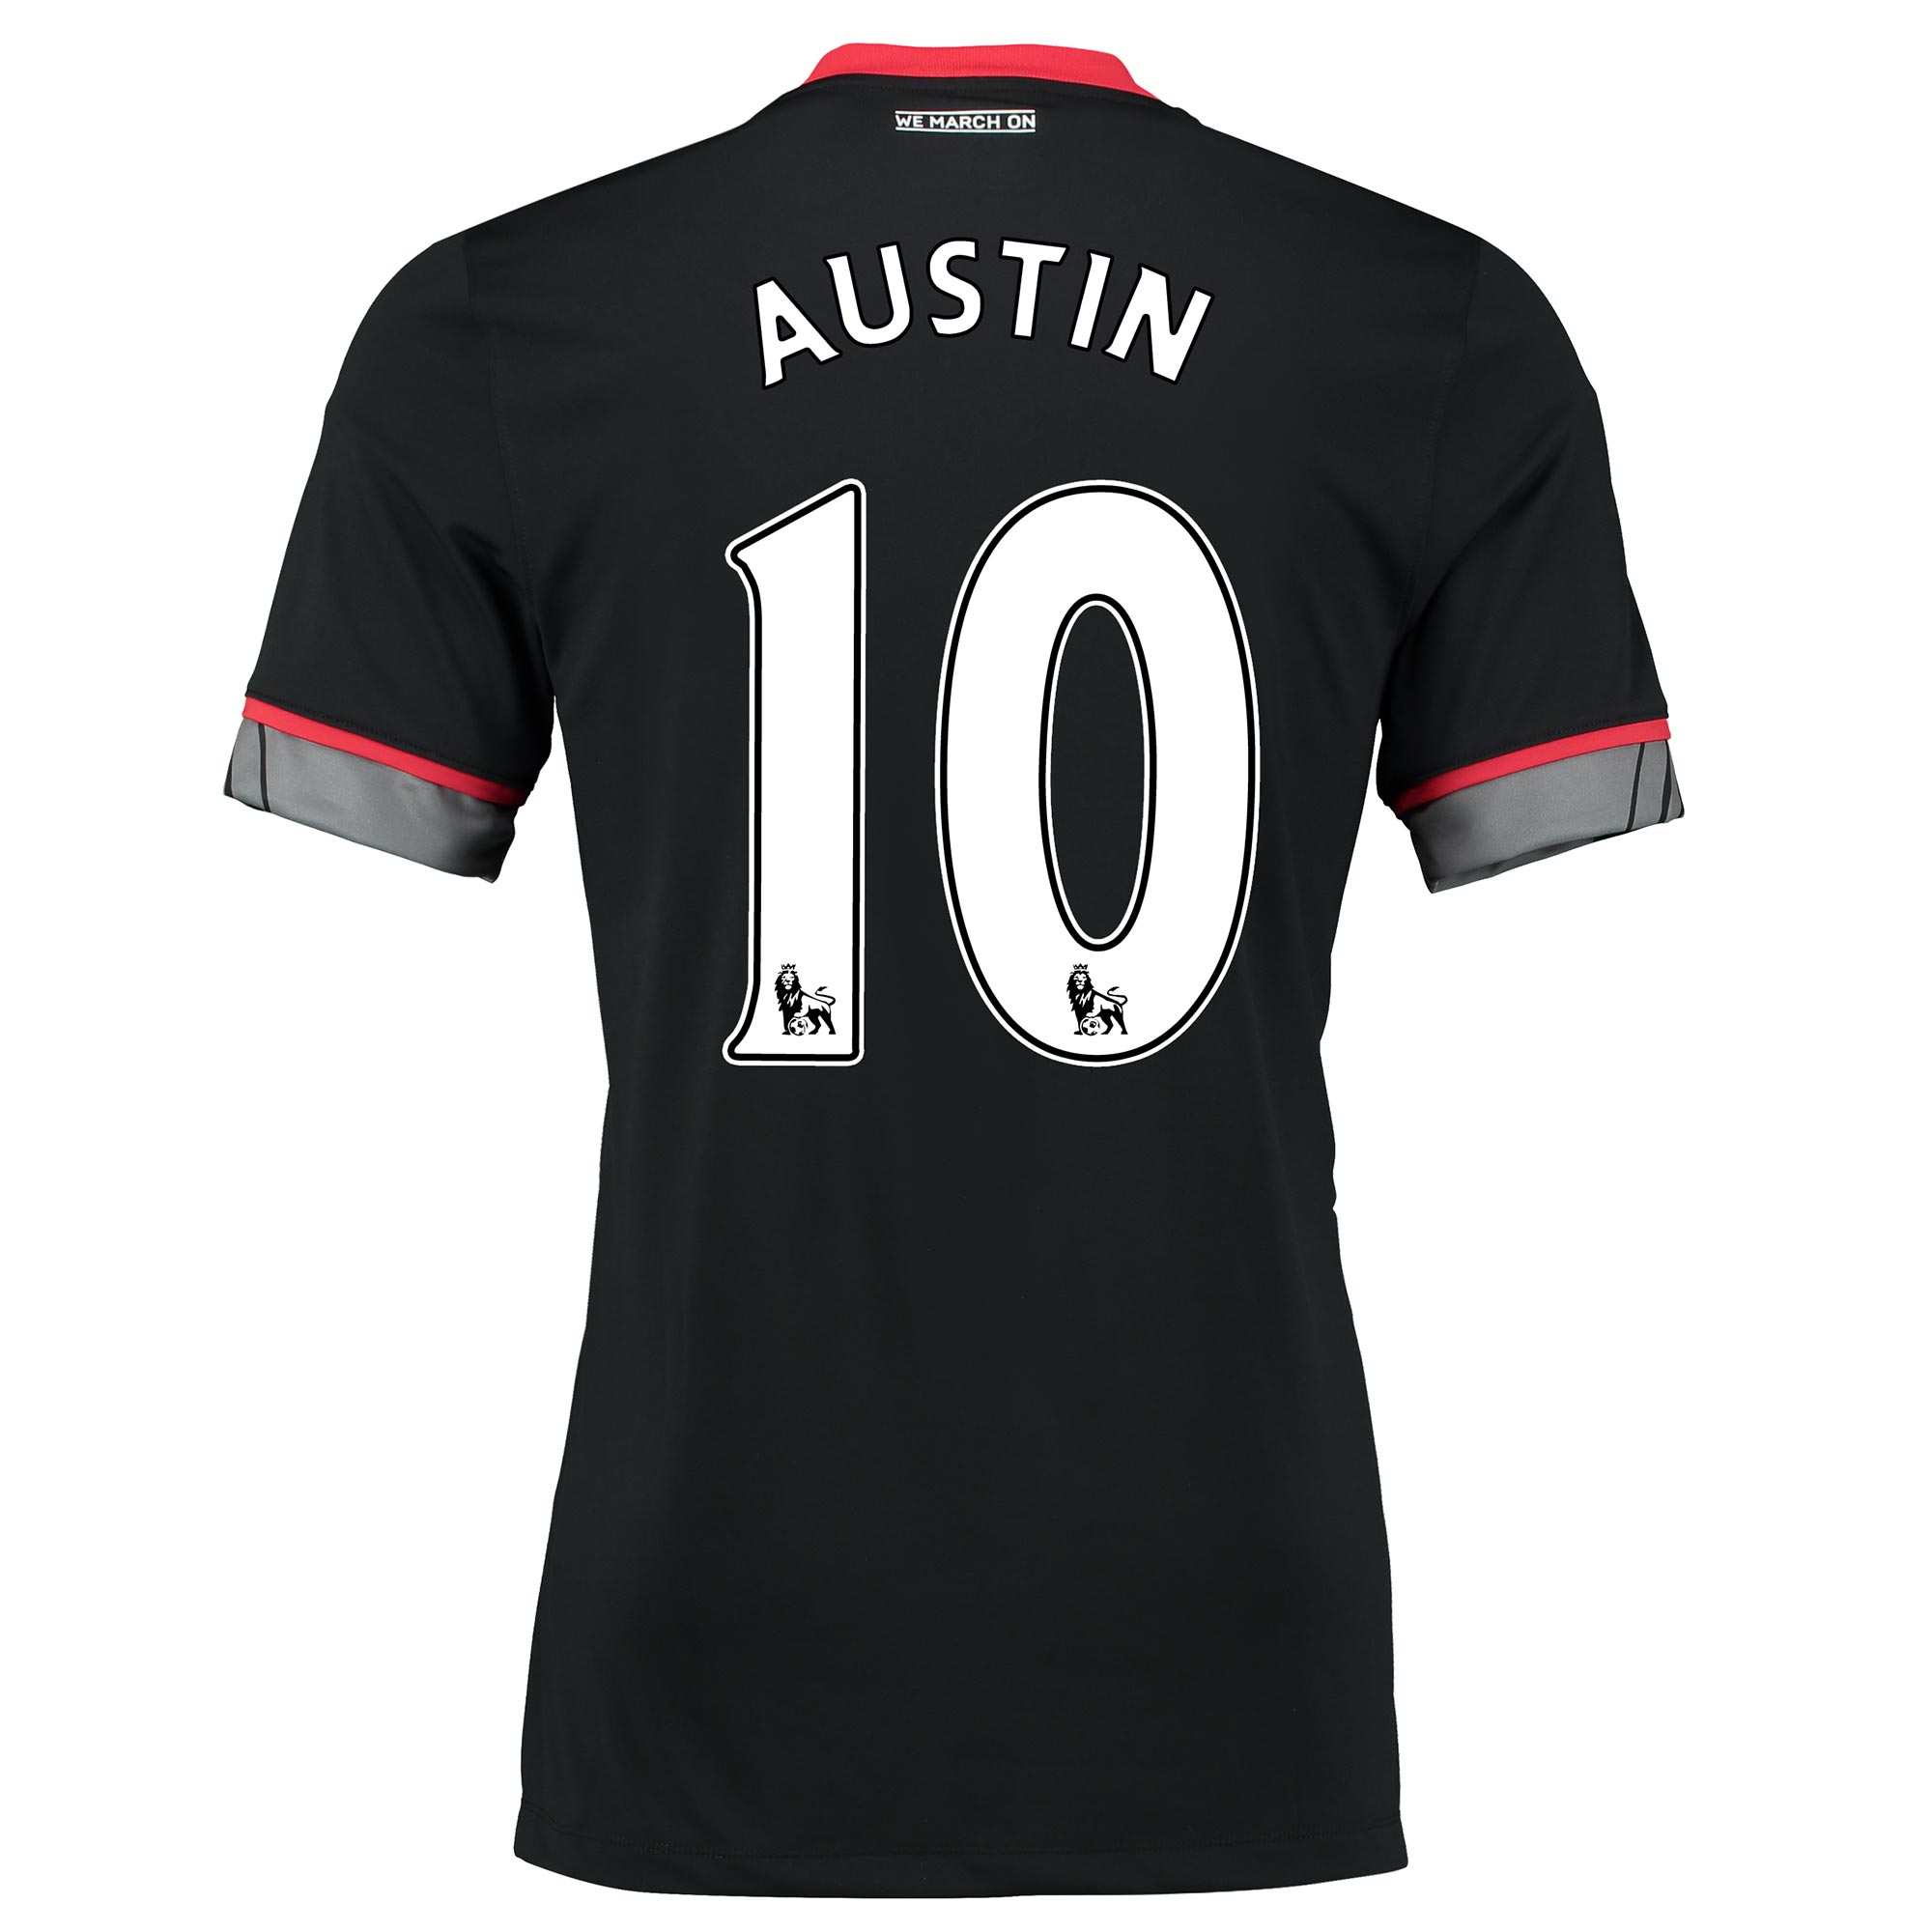 Image of Southampton Away Shirt 2016-17 Black with Charlie Austin 10 printing, Black